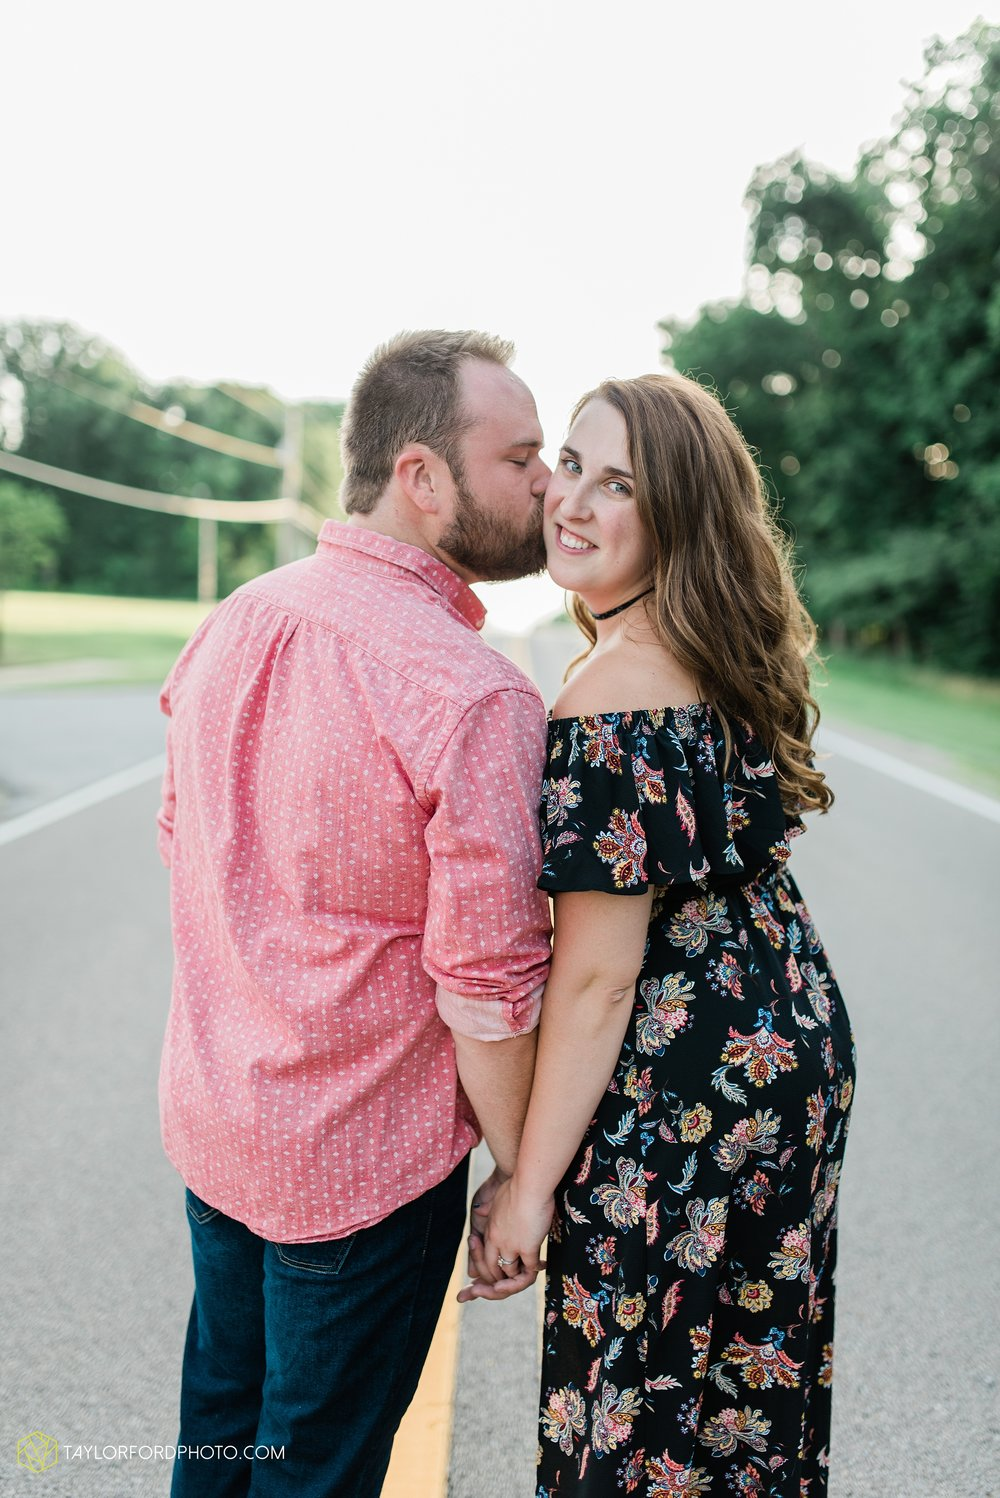 chelsey-jackson-young-downtown-fort-wayne-indiana-the-halls-deck-engagement-wedding-photographer-Taylor-Ford-Photography_8230.jpg